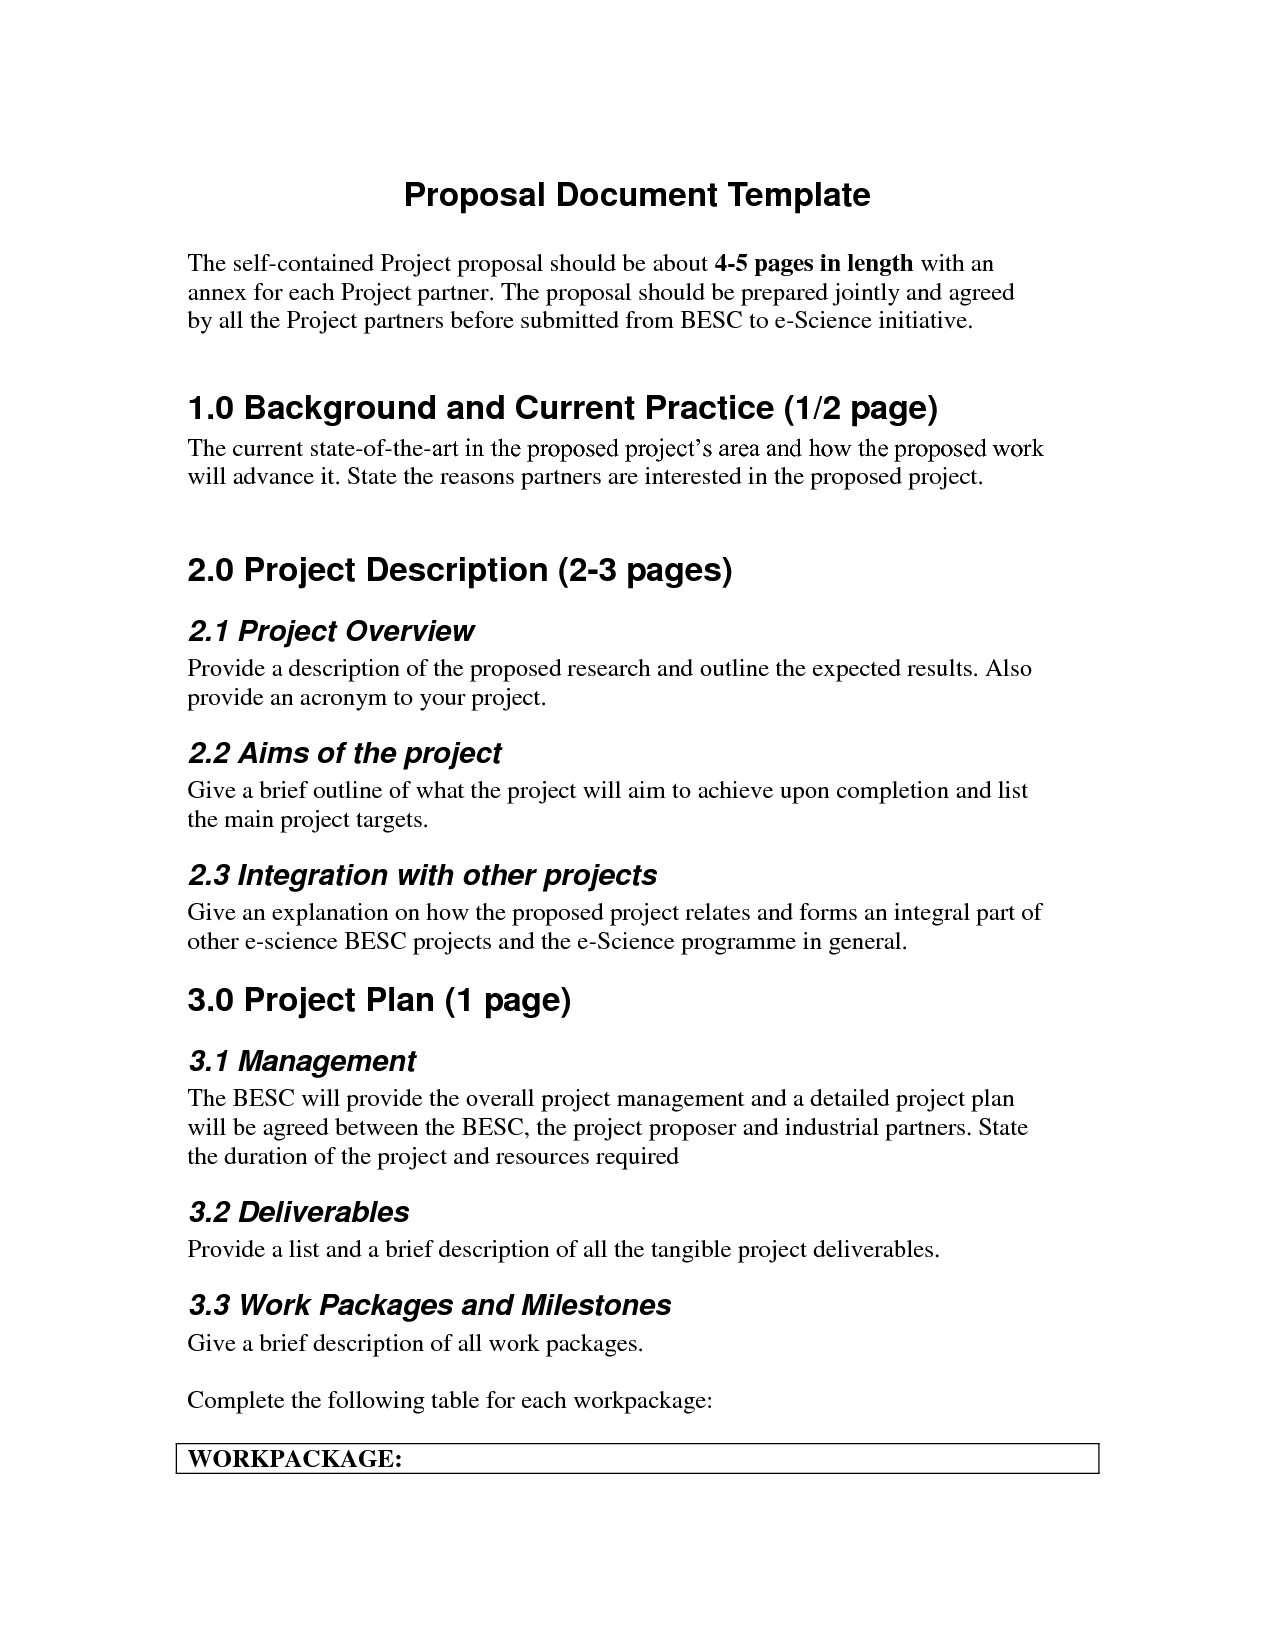 Descriptive Christmas Essays Essay Proposal Template Proposal Essay Topics Before Students Write A  College Research Paper Evaluation Essays Samples also Sample Theme Essay Essay Proposal Template Proposal Essay Topics Before Students  Argumentative Essay Topics Death Penalty